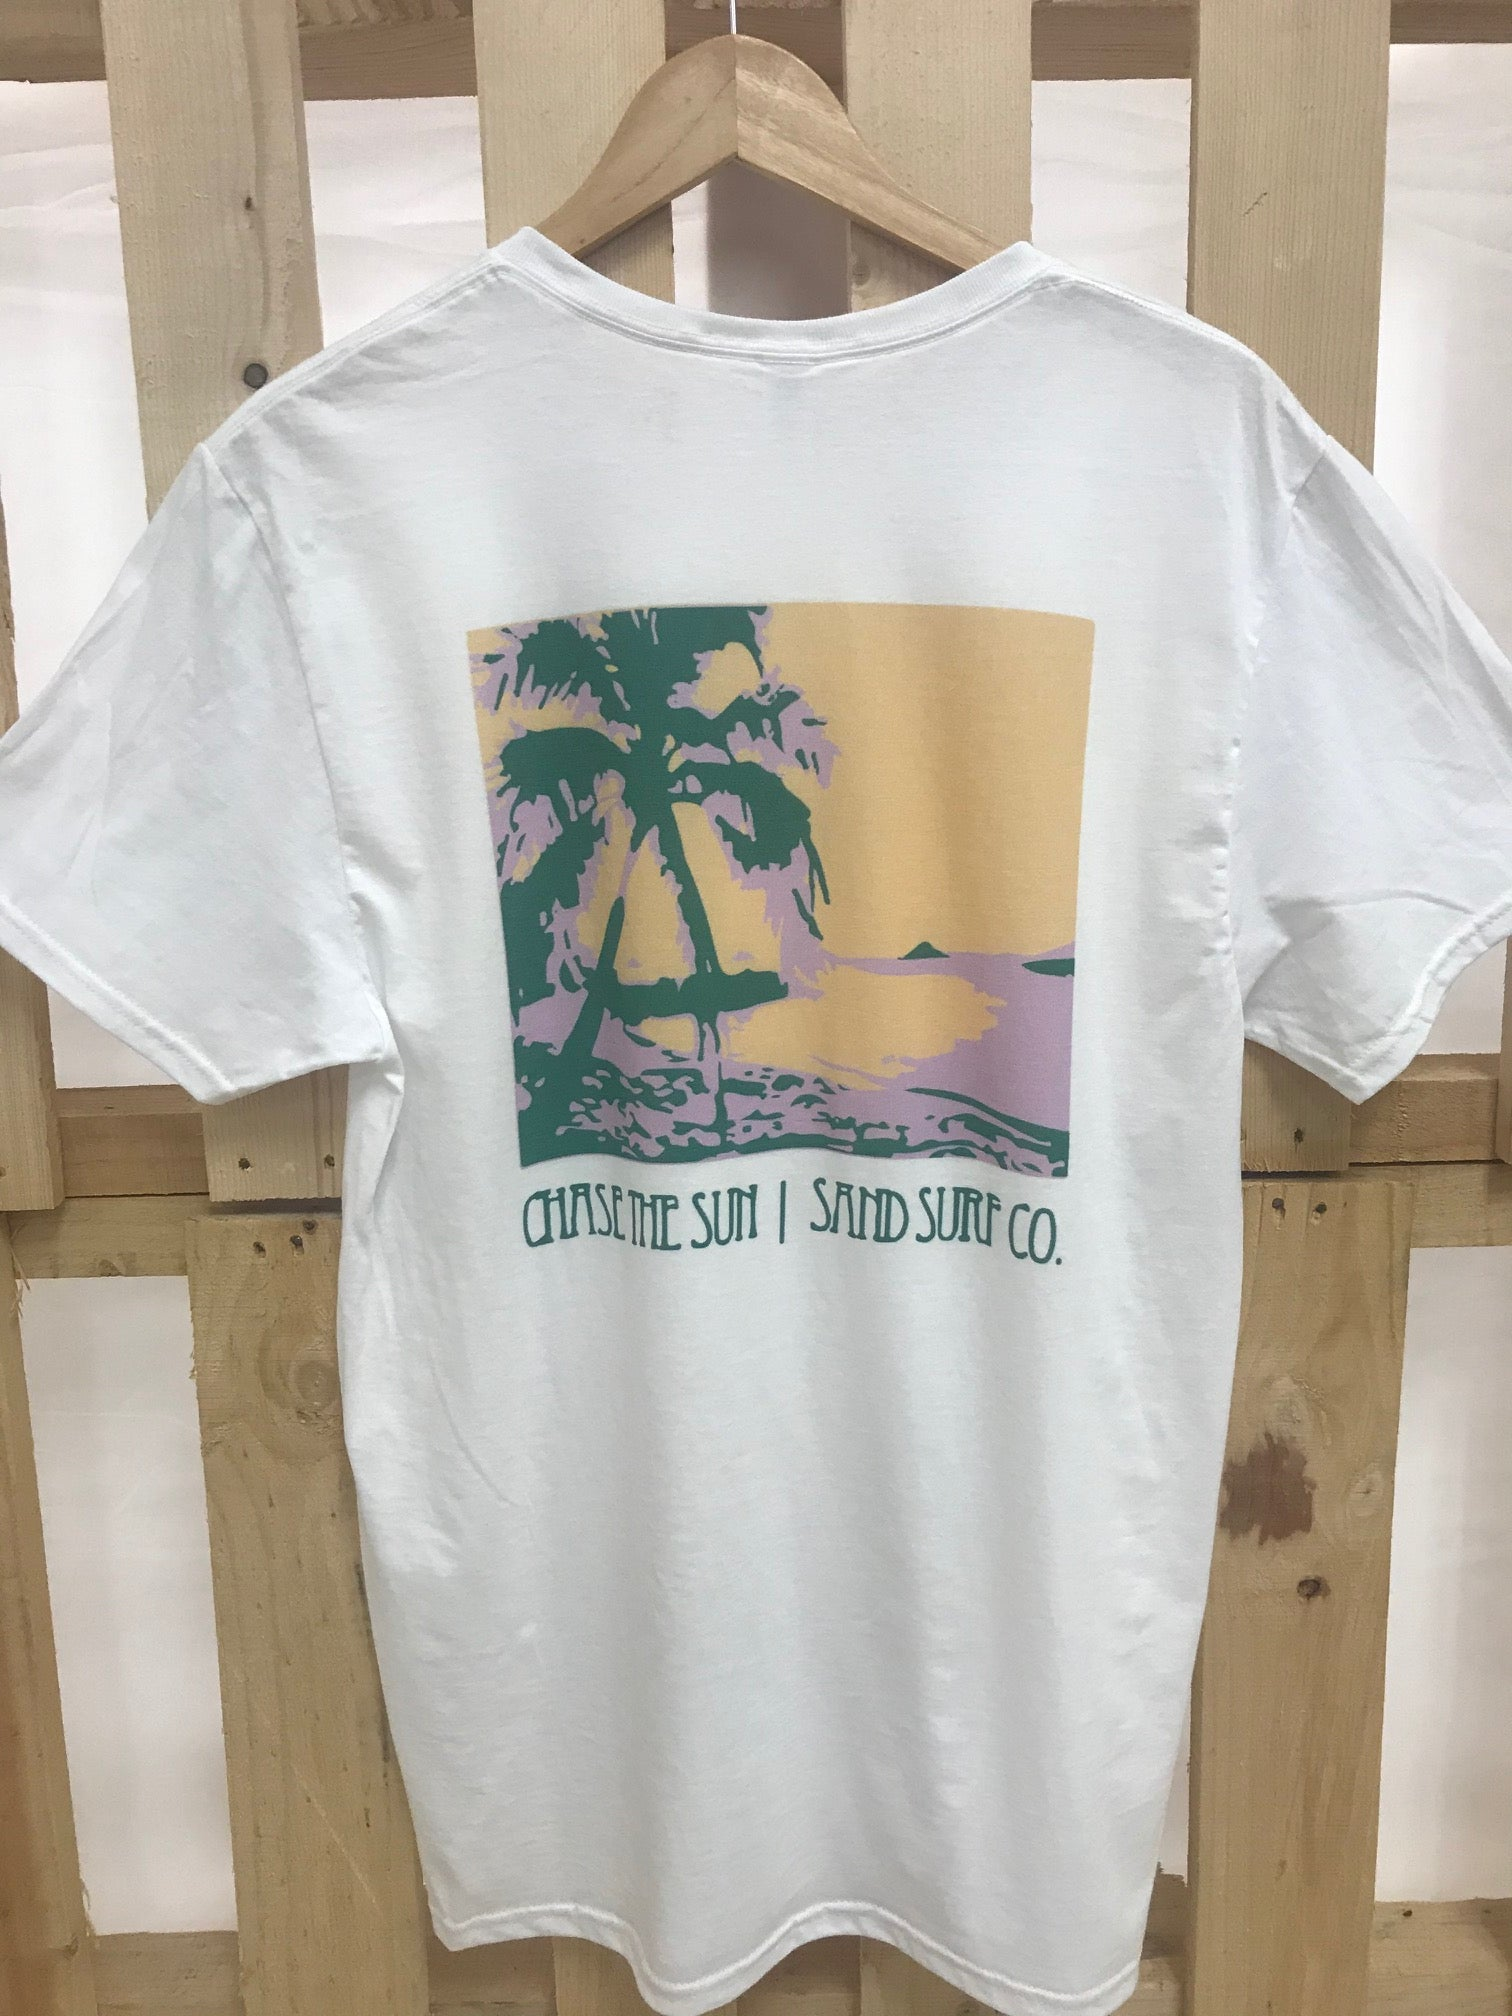 Sand Surf Co. Official Shop Tee